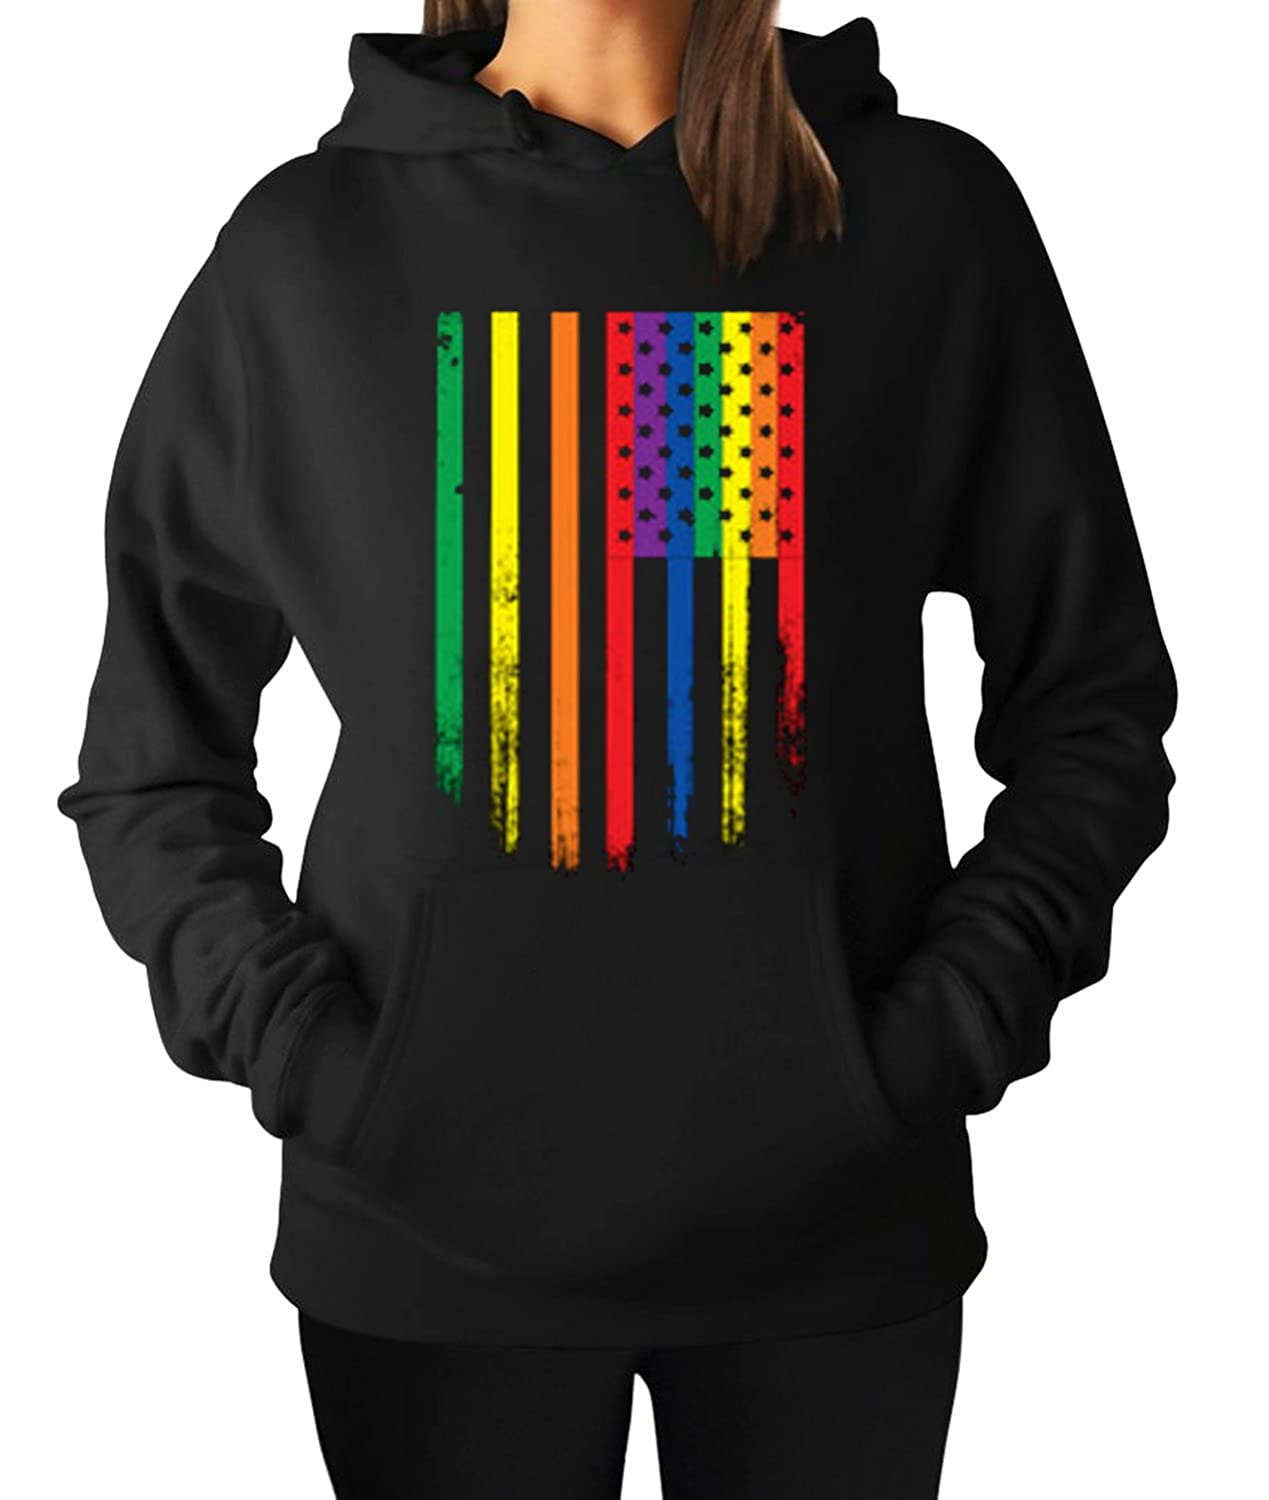 new Women s Gay Pride Flag Vintage Distressed Gay Rights LGBT Hoodie Hooded  Sweater 83b11a146b